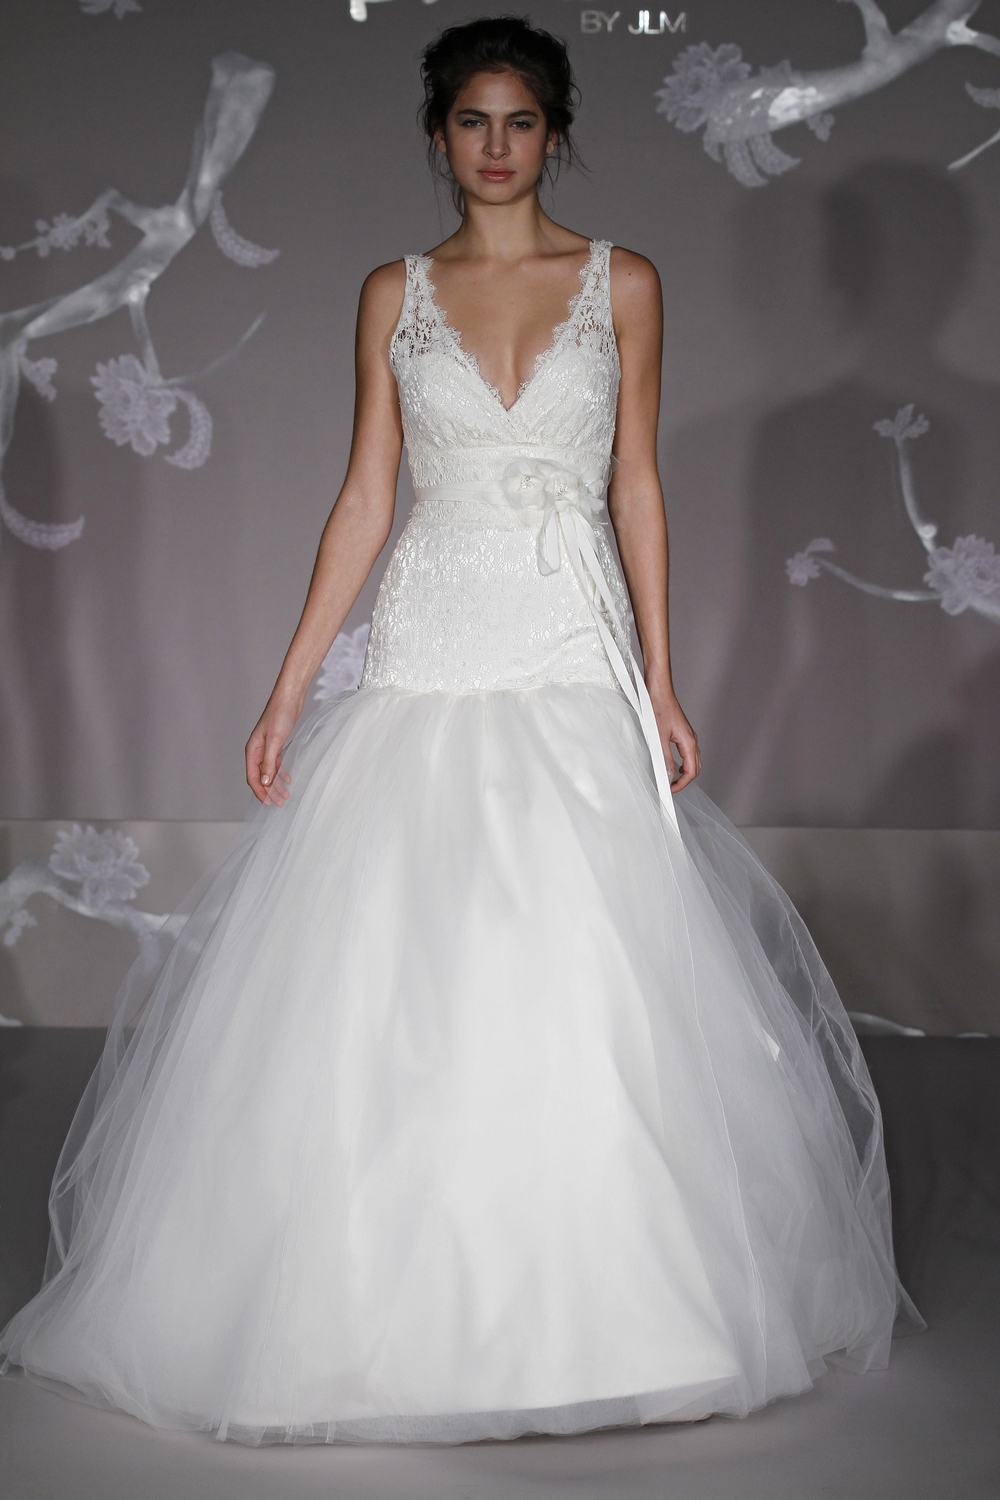 1100-spring-2011-blush-by-jlm-wedding-dress-drop-waist-full-a-line-deep-v-neck.full